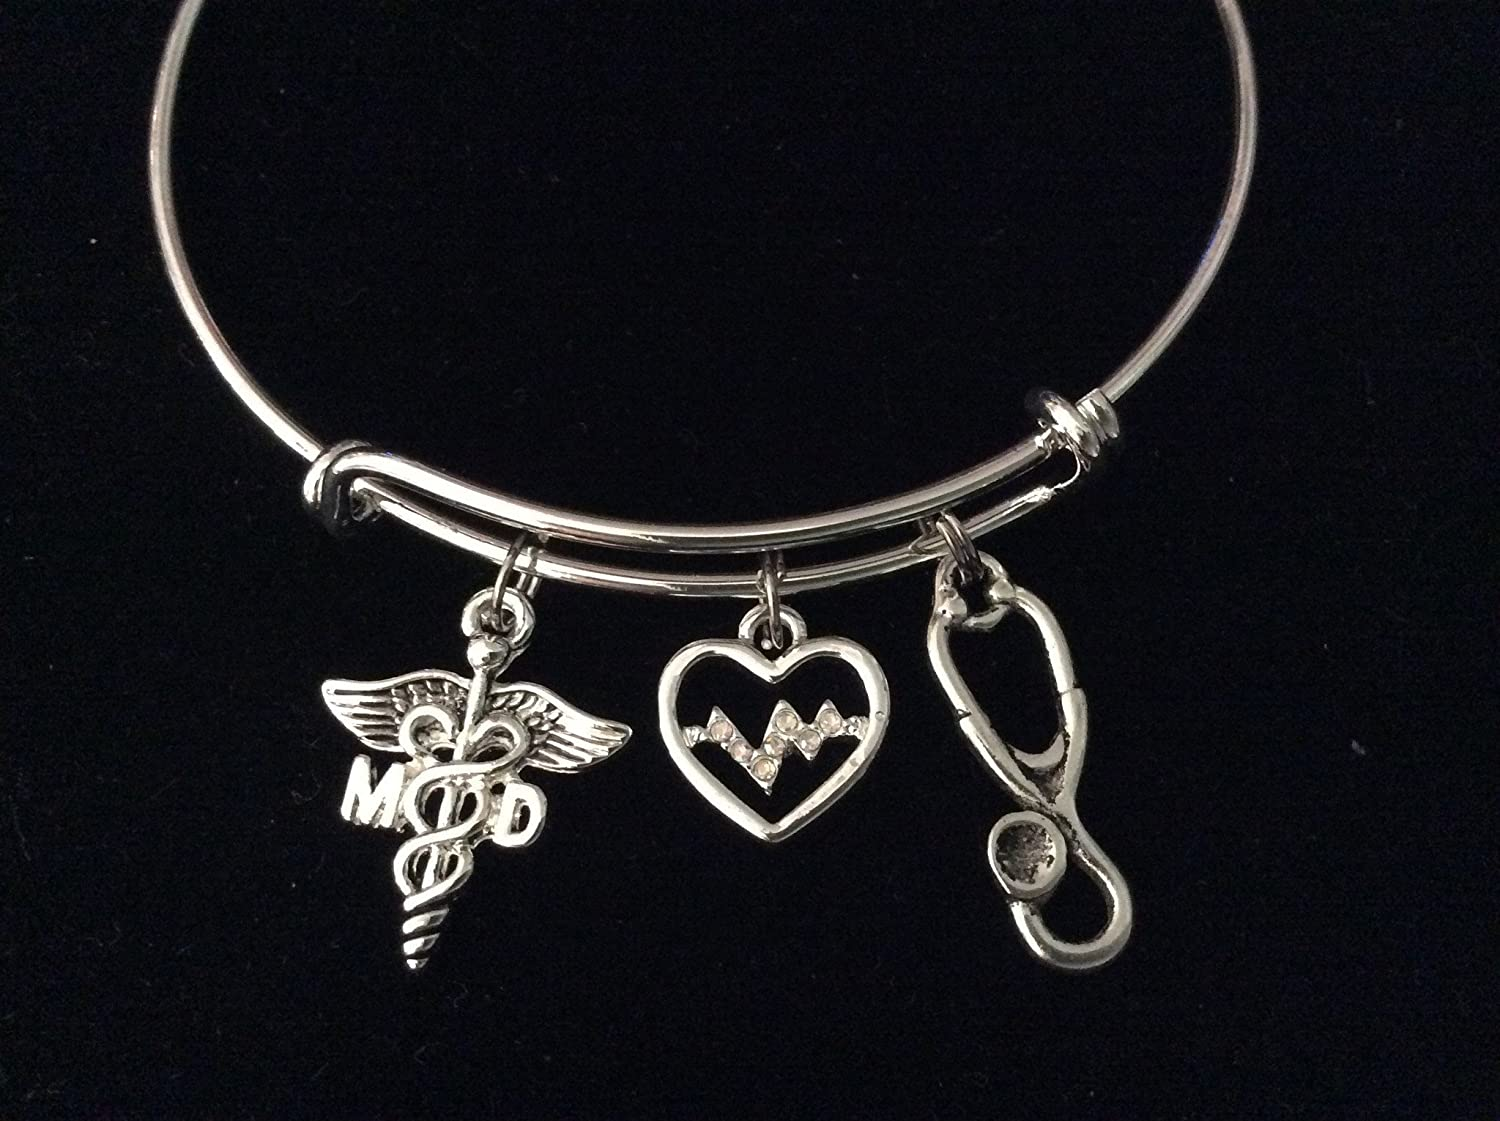 MD Medical Doctor Caduceus EKG Crystal Heart Heartbeat and Stethoscope Silver Expandable Charm Bracelet Adjustable Bangle With Optional 2017 Charm